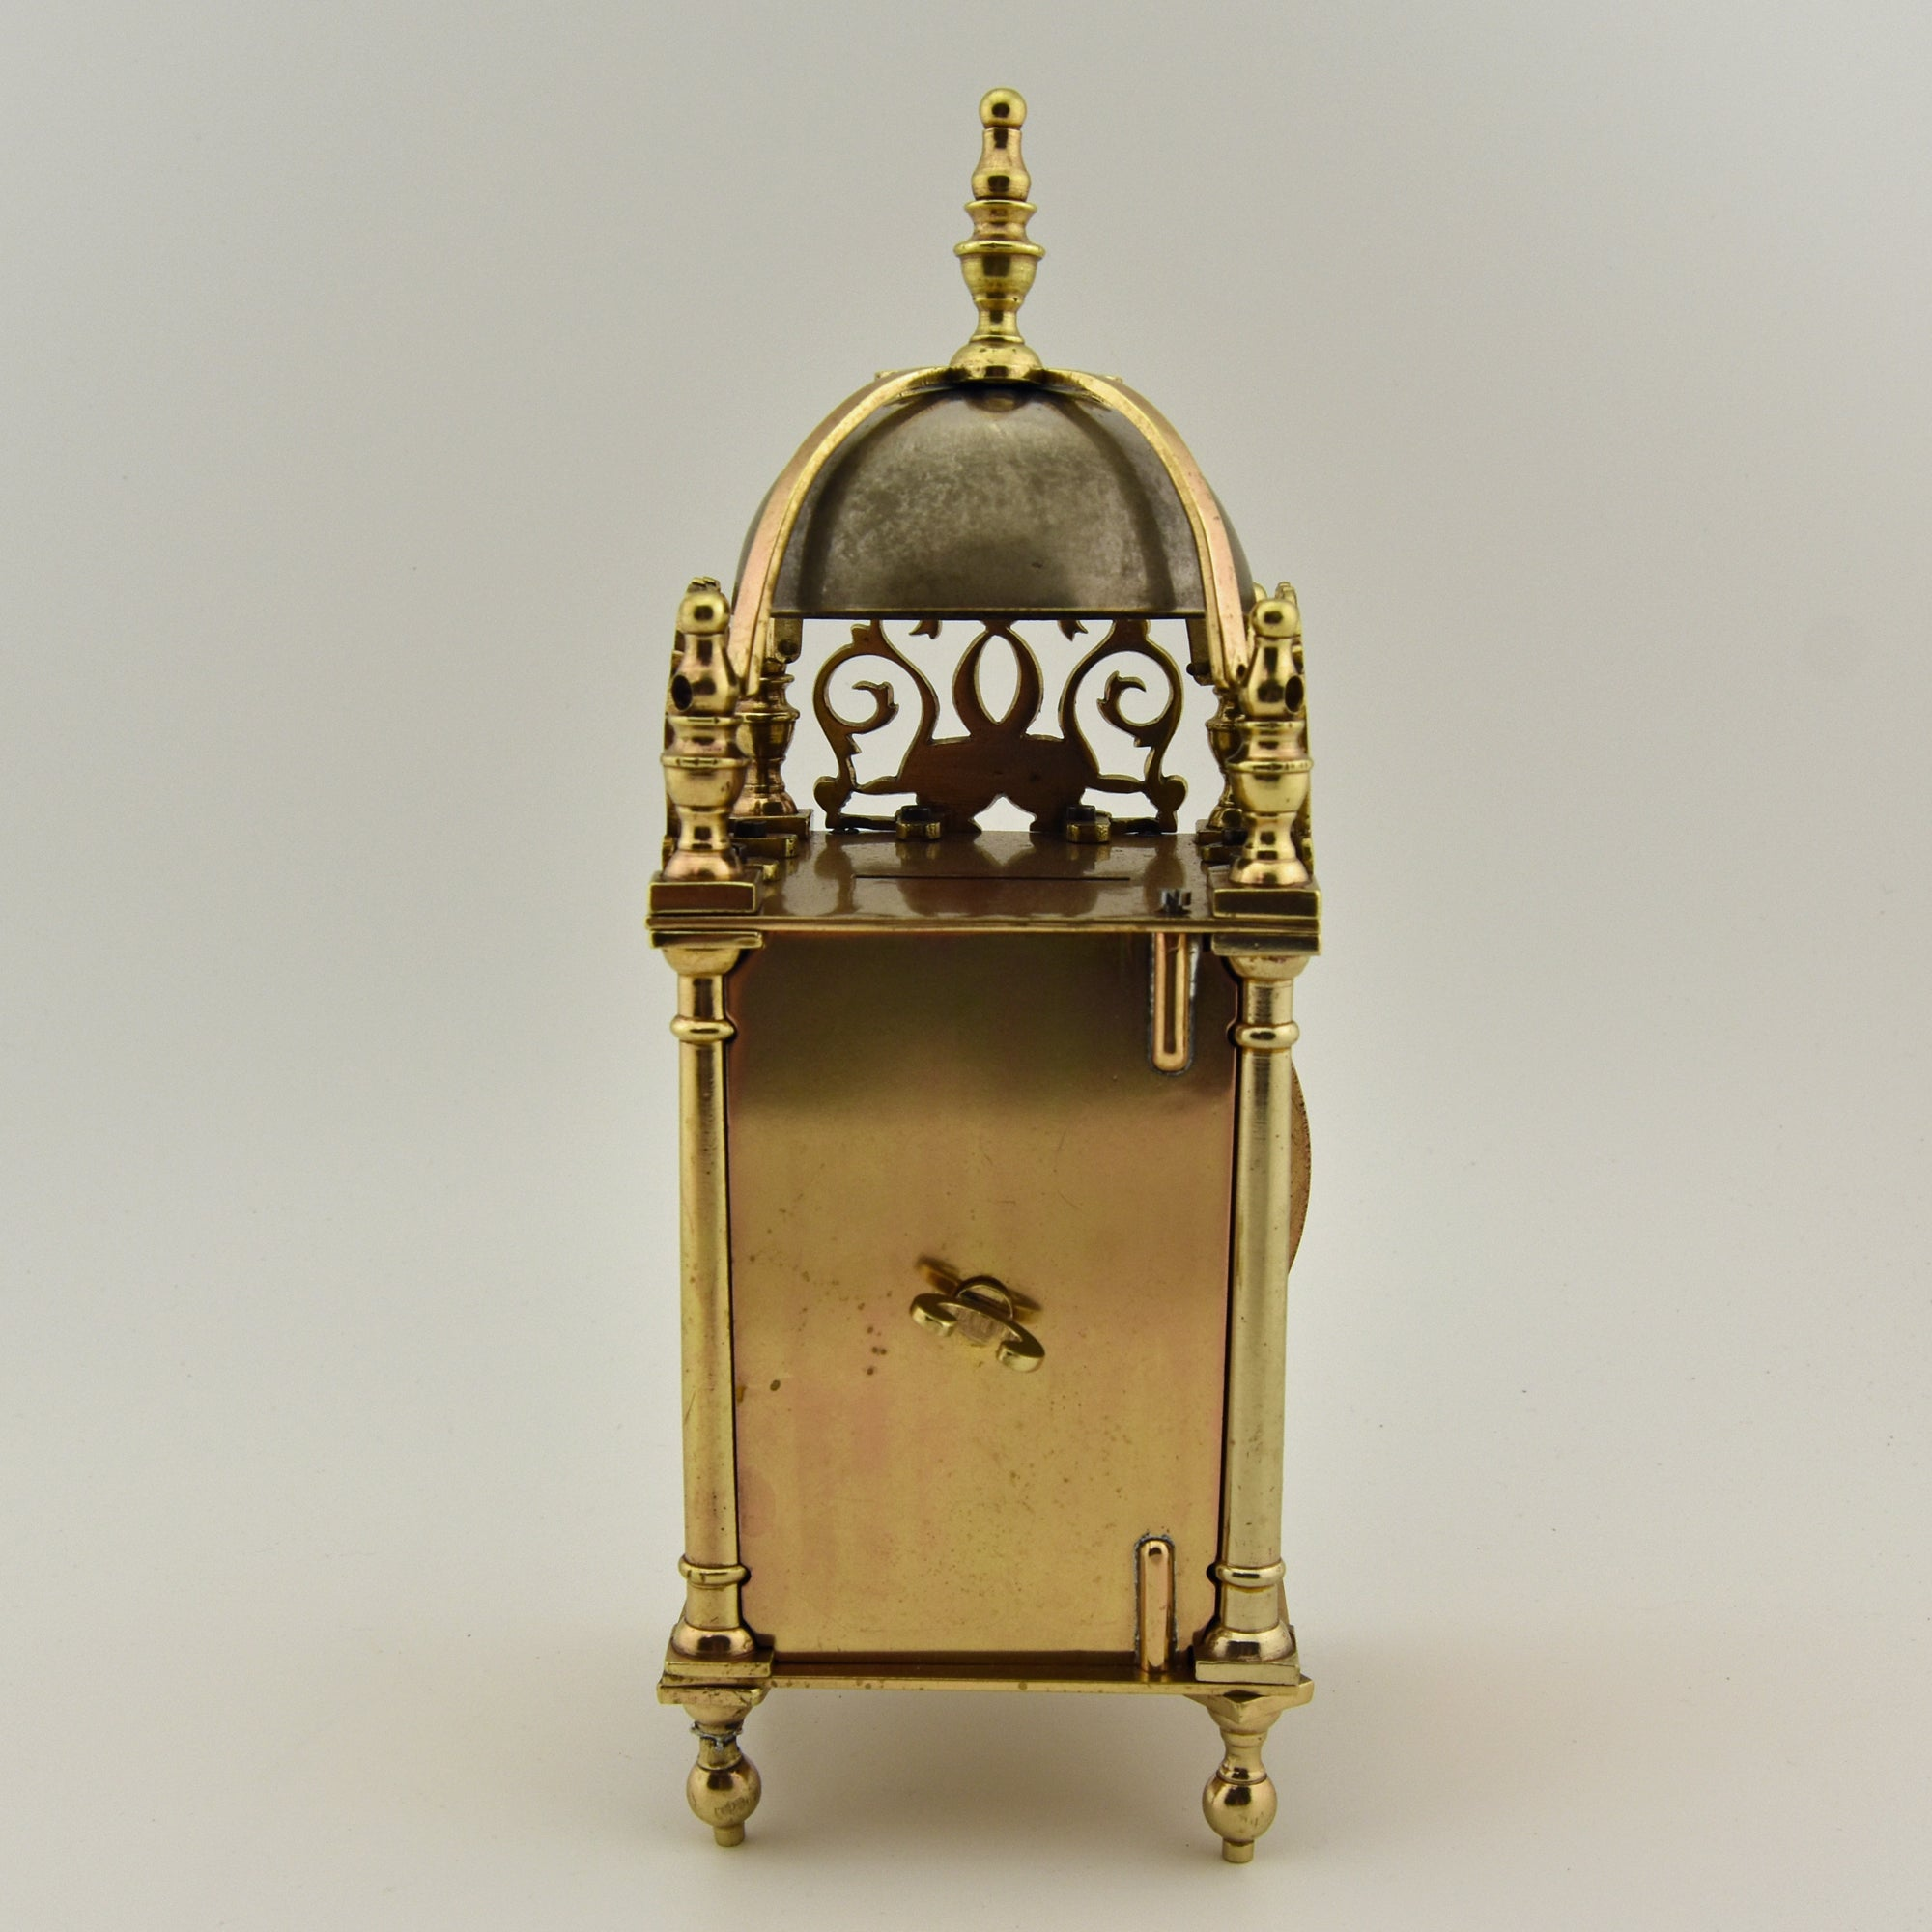 1940s Brass lantern clock case with new quartz movement